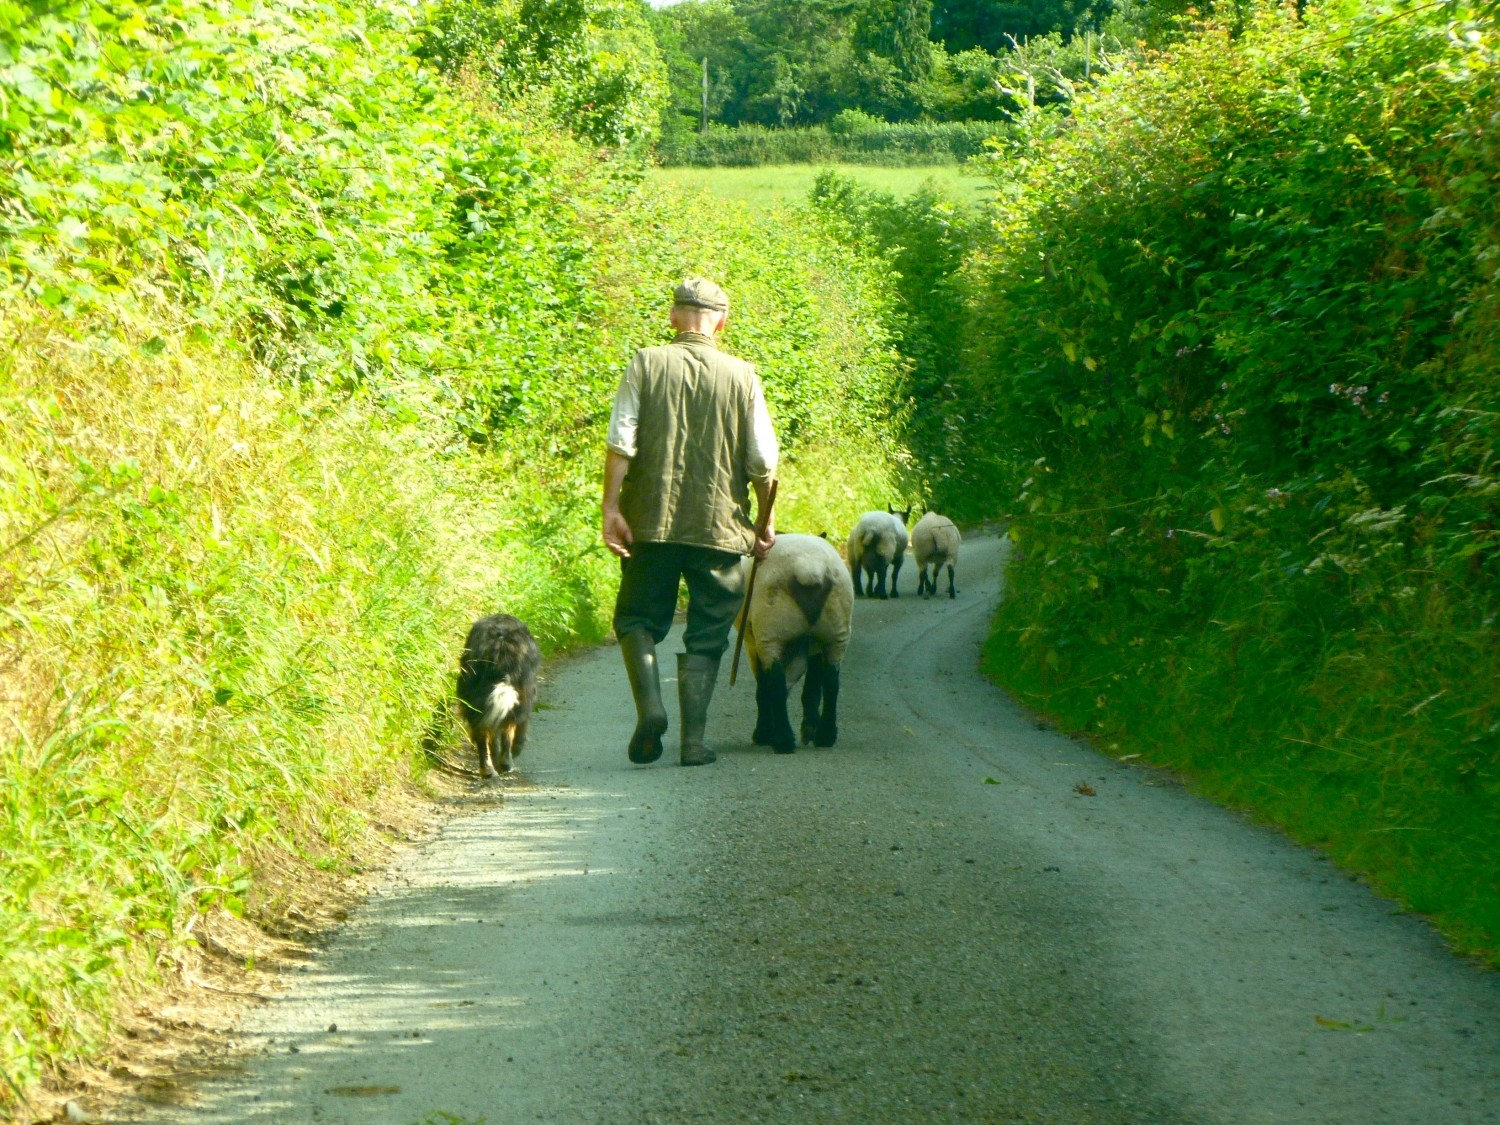 A South Shropshire traffic jam